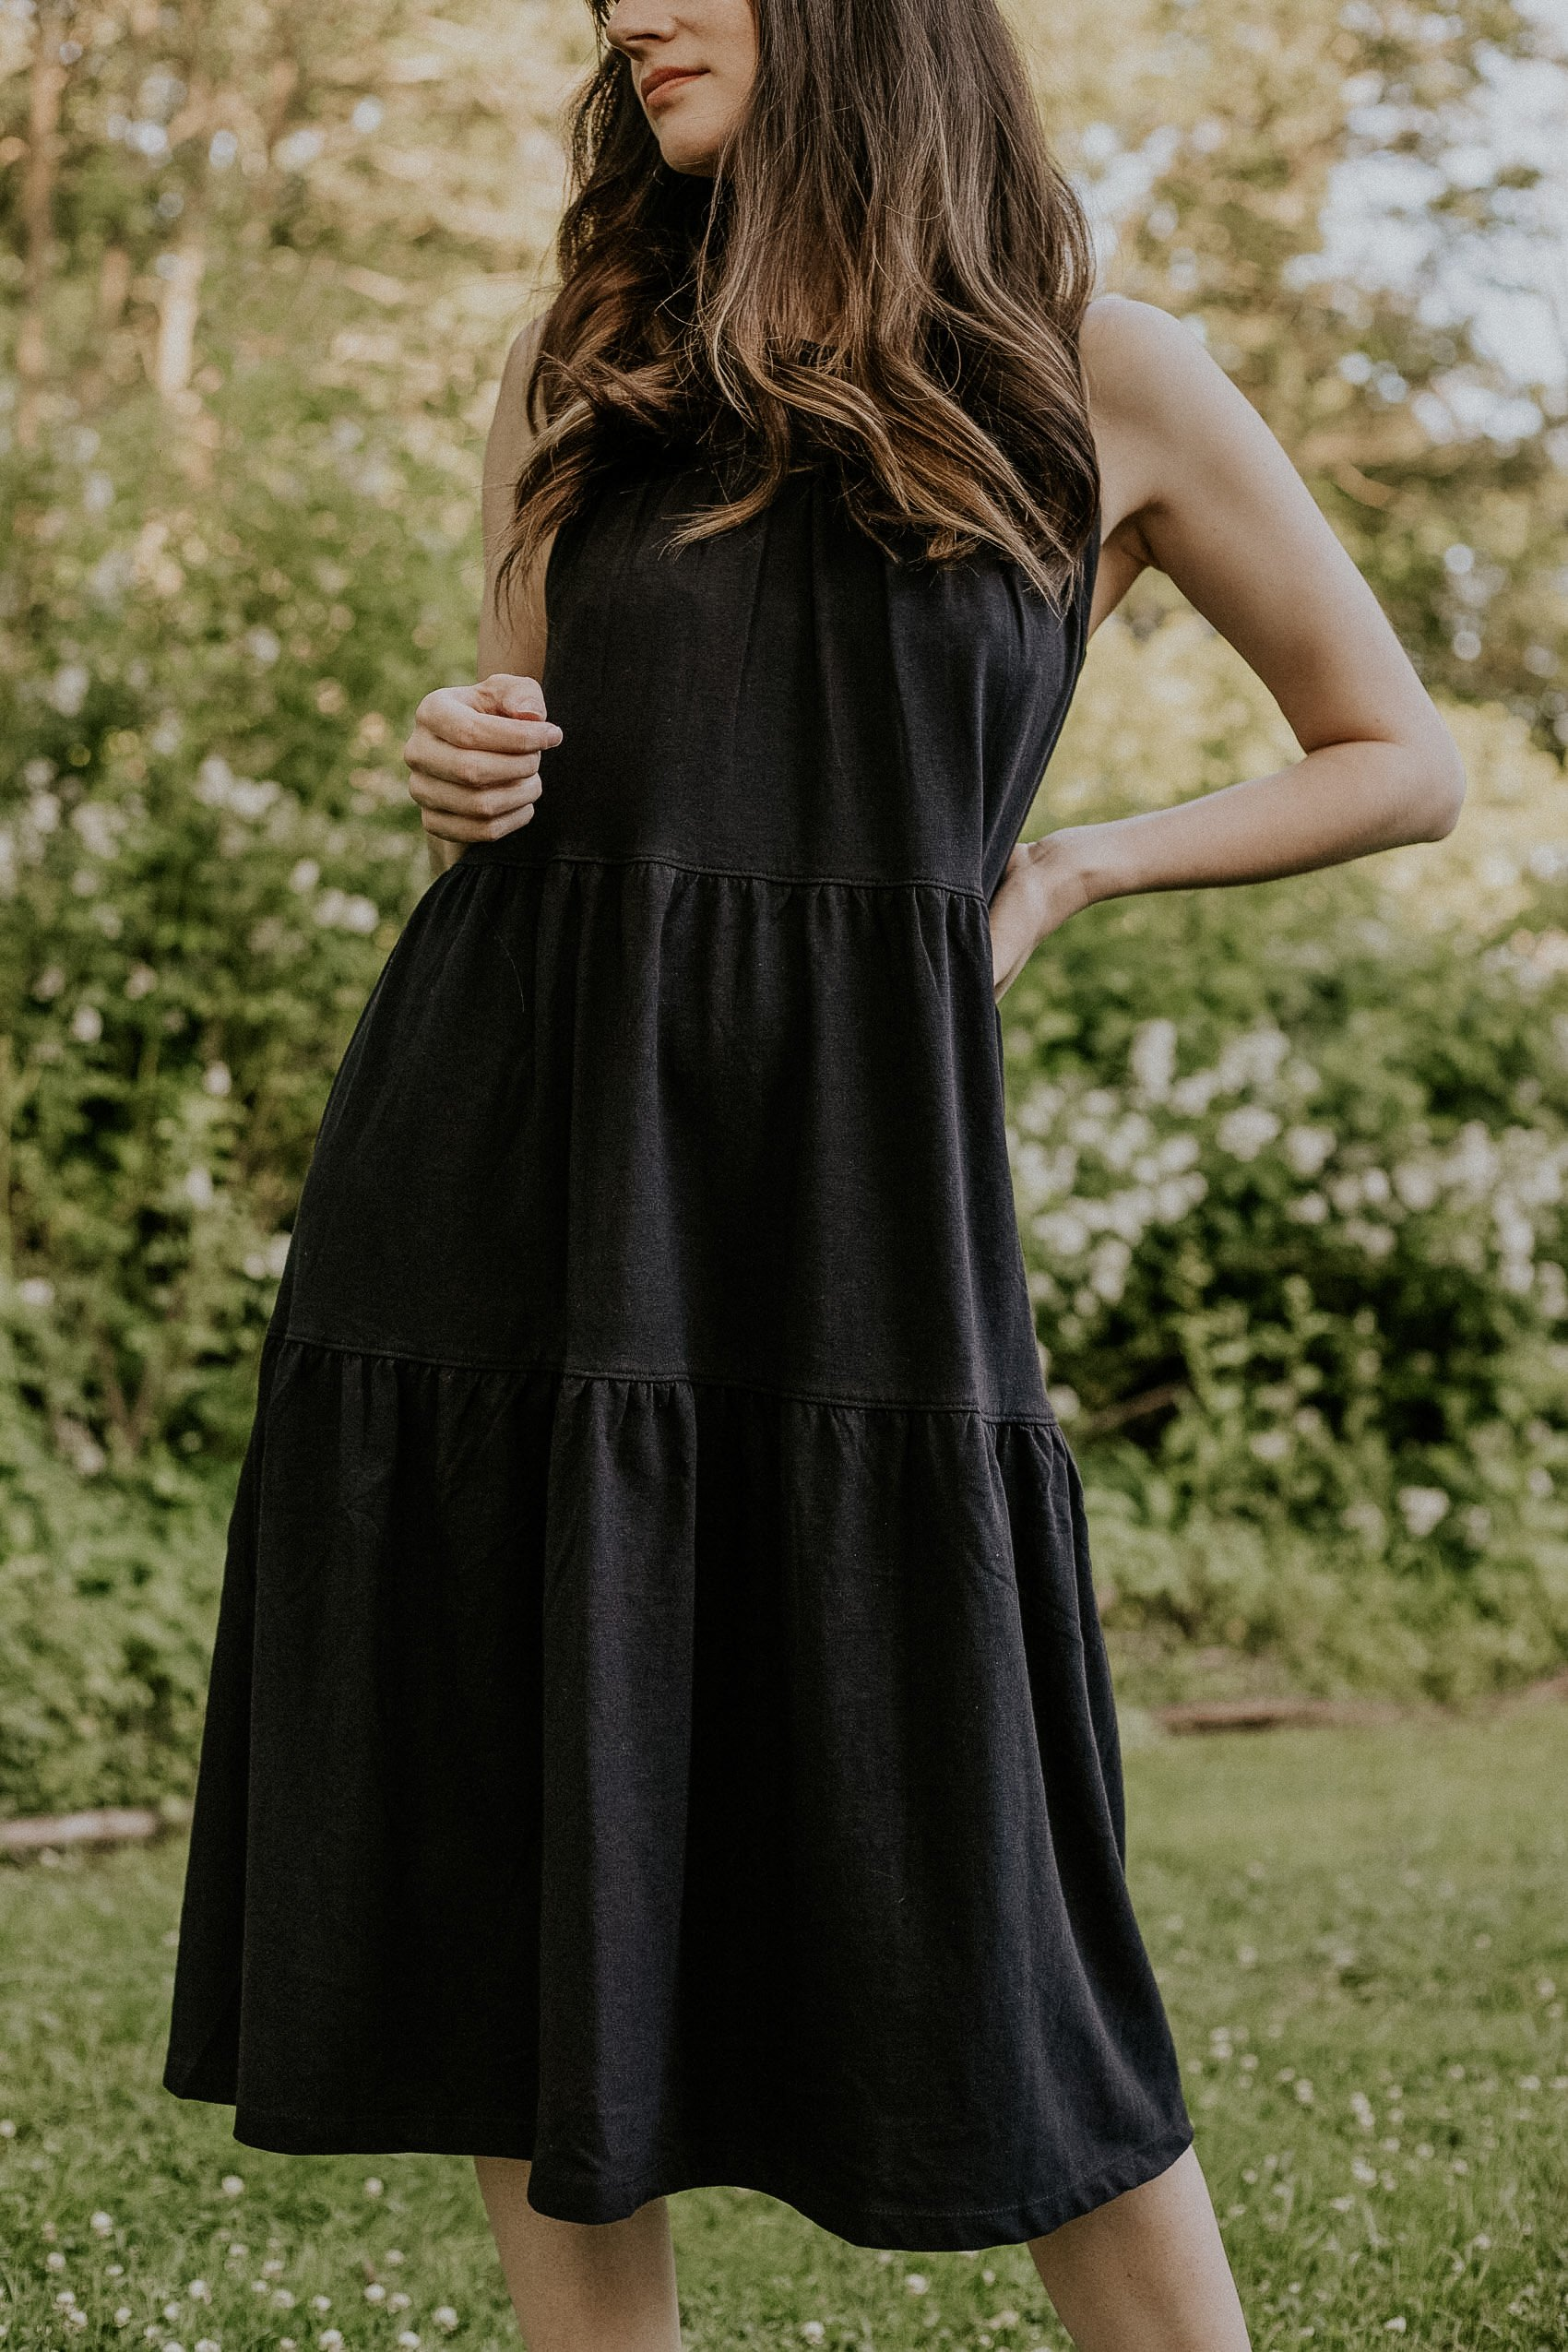 Black Sleeveless Tiered T-Shirt Dress from Everlane on woman standing in field